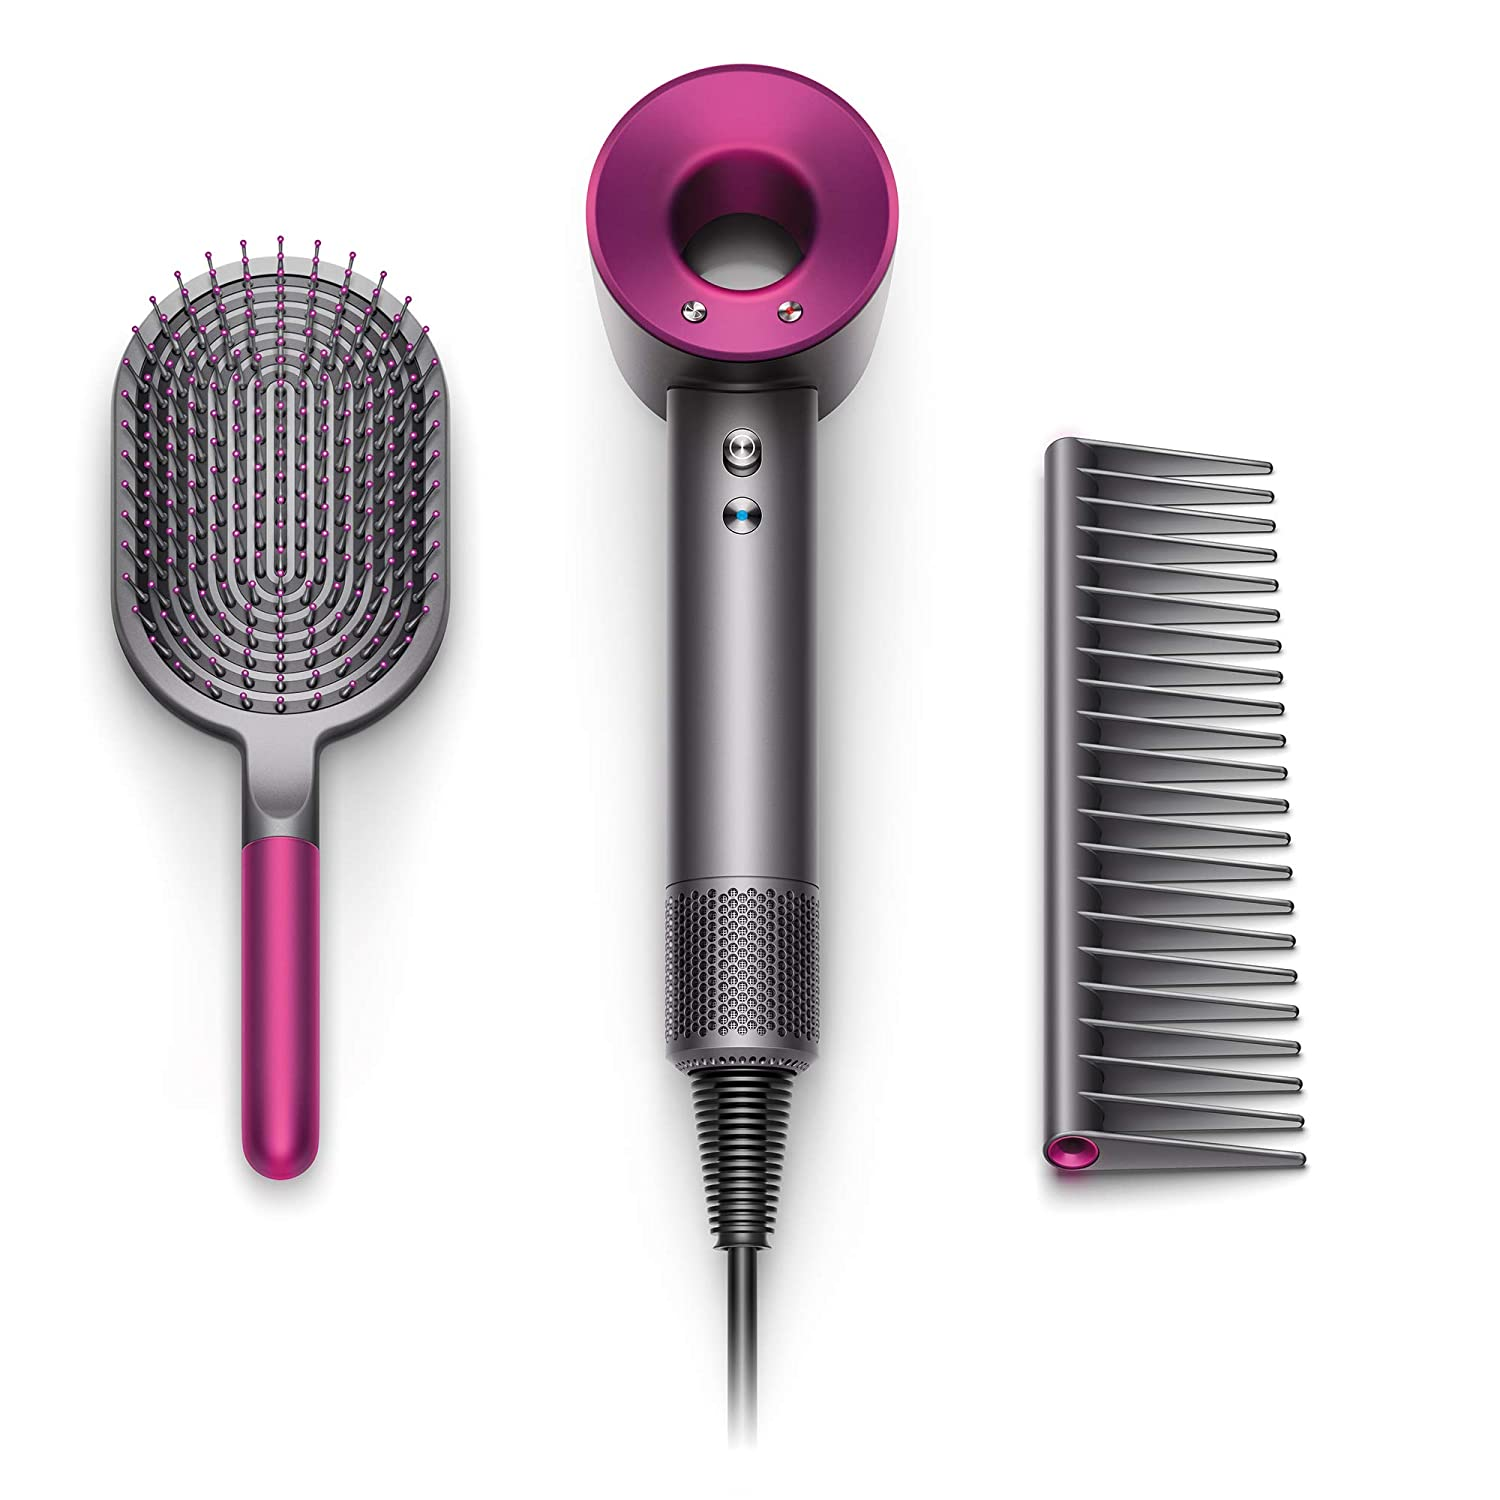 Dyson Supersonic Hair Dryer Special Edition-Complimentary Gift Set Designed Paddle, Iron Fuchsia w Brush Comb